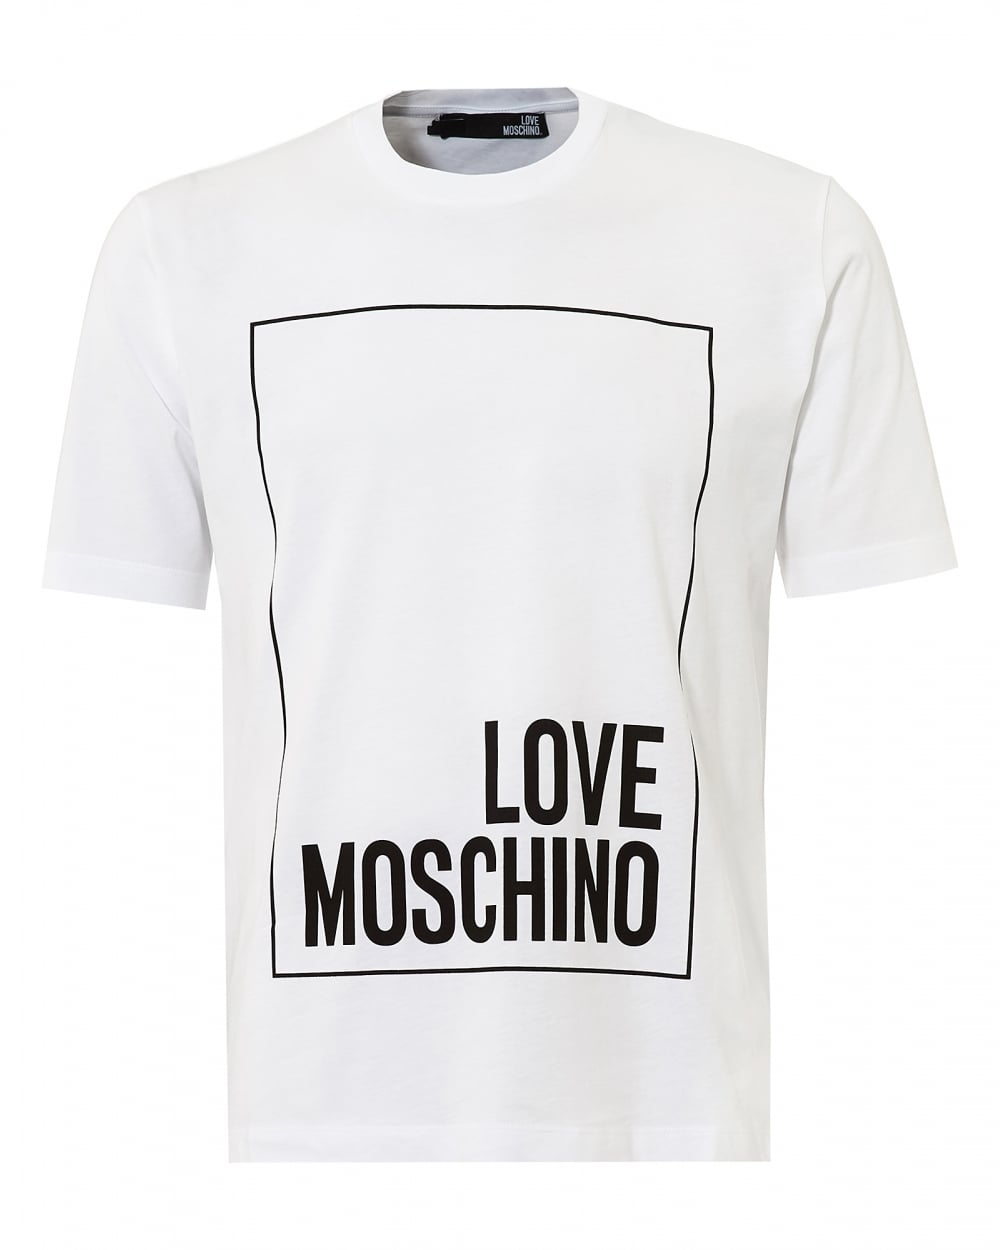 love moschino mens boxed logo t shirt regular fit white tee. Black Bedroom Furniture Sets. Home Design Ideas